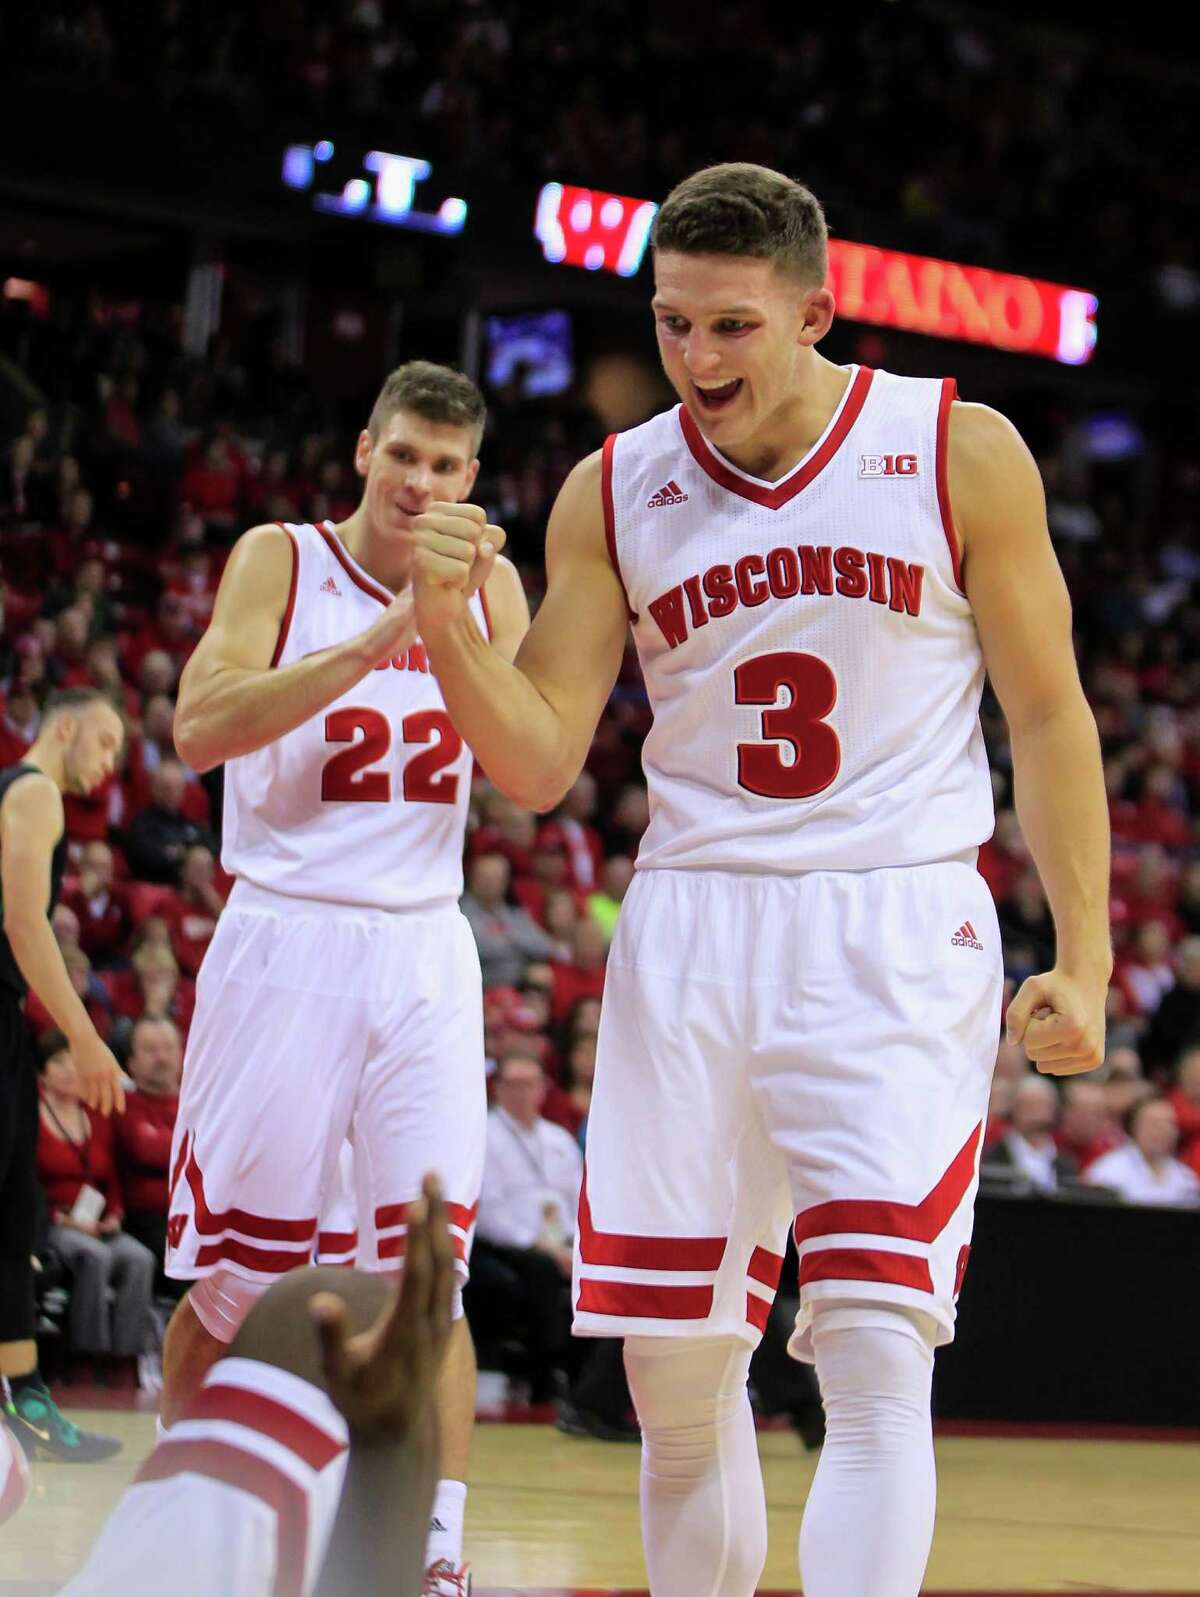 Top four upsets The season started last week, and several of the top teams were surprised in games that were considered easy wins. 1. Then No. 17 Wisconsin, which played in last season's Final Four, lost on opening night to Western Illinois 69-67. The loss dropped the Badgers out of the rankings.